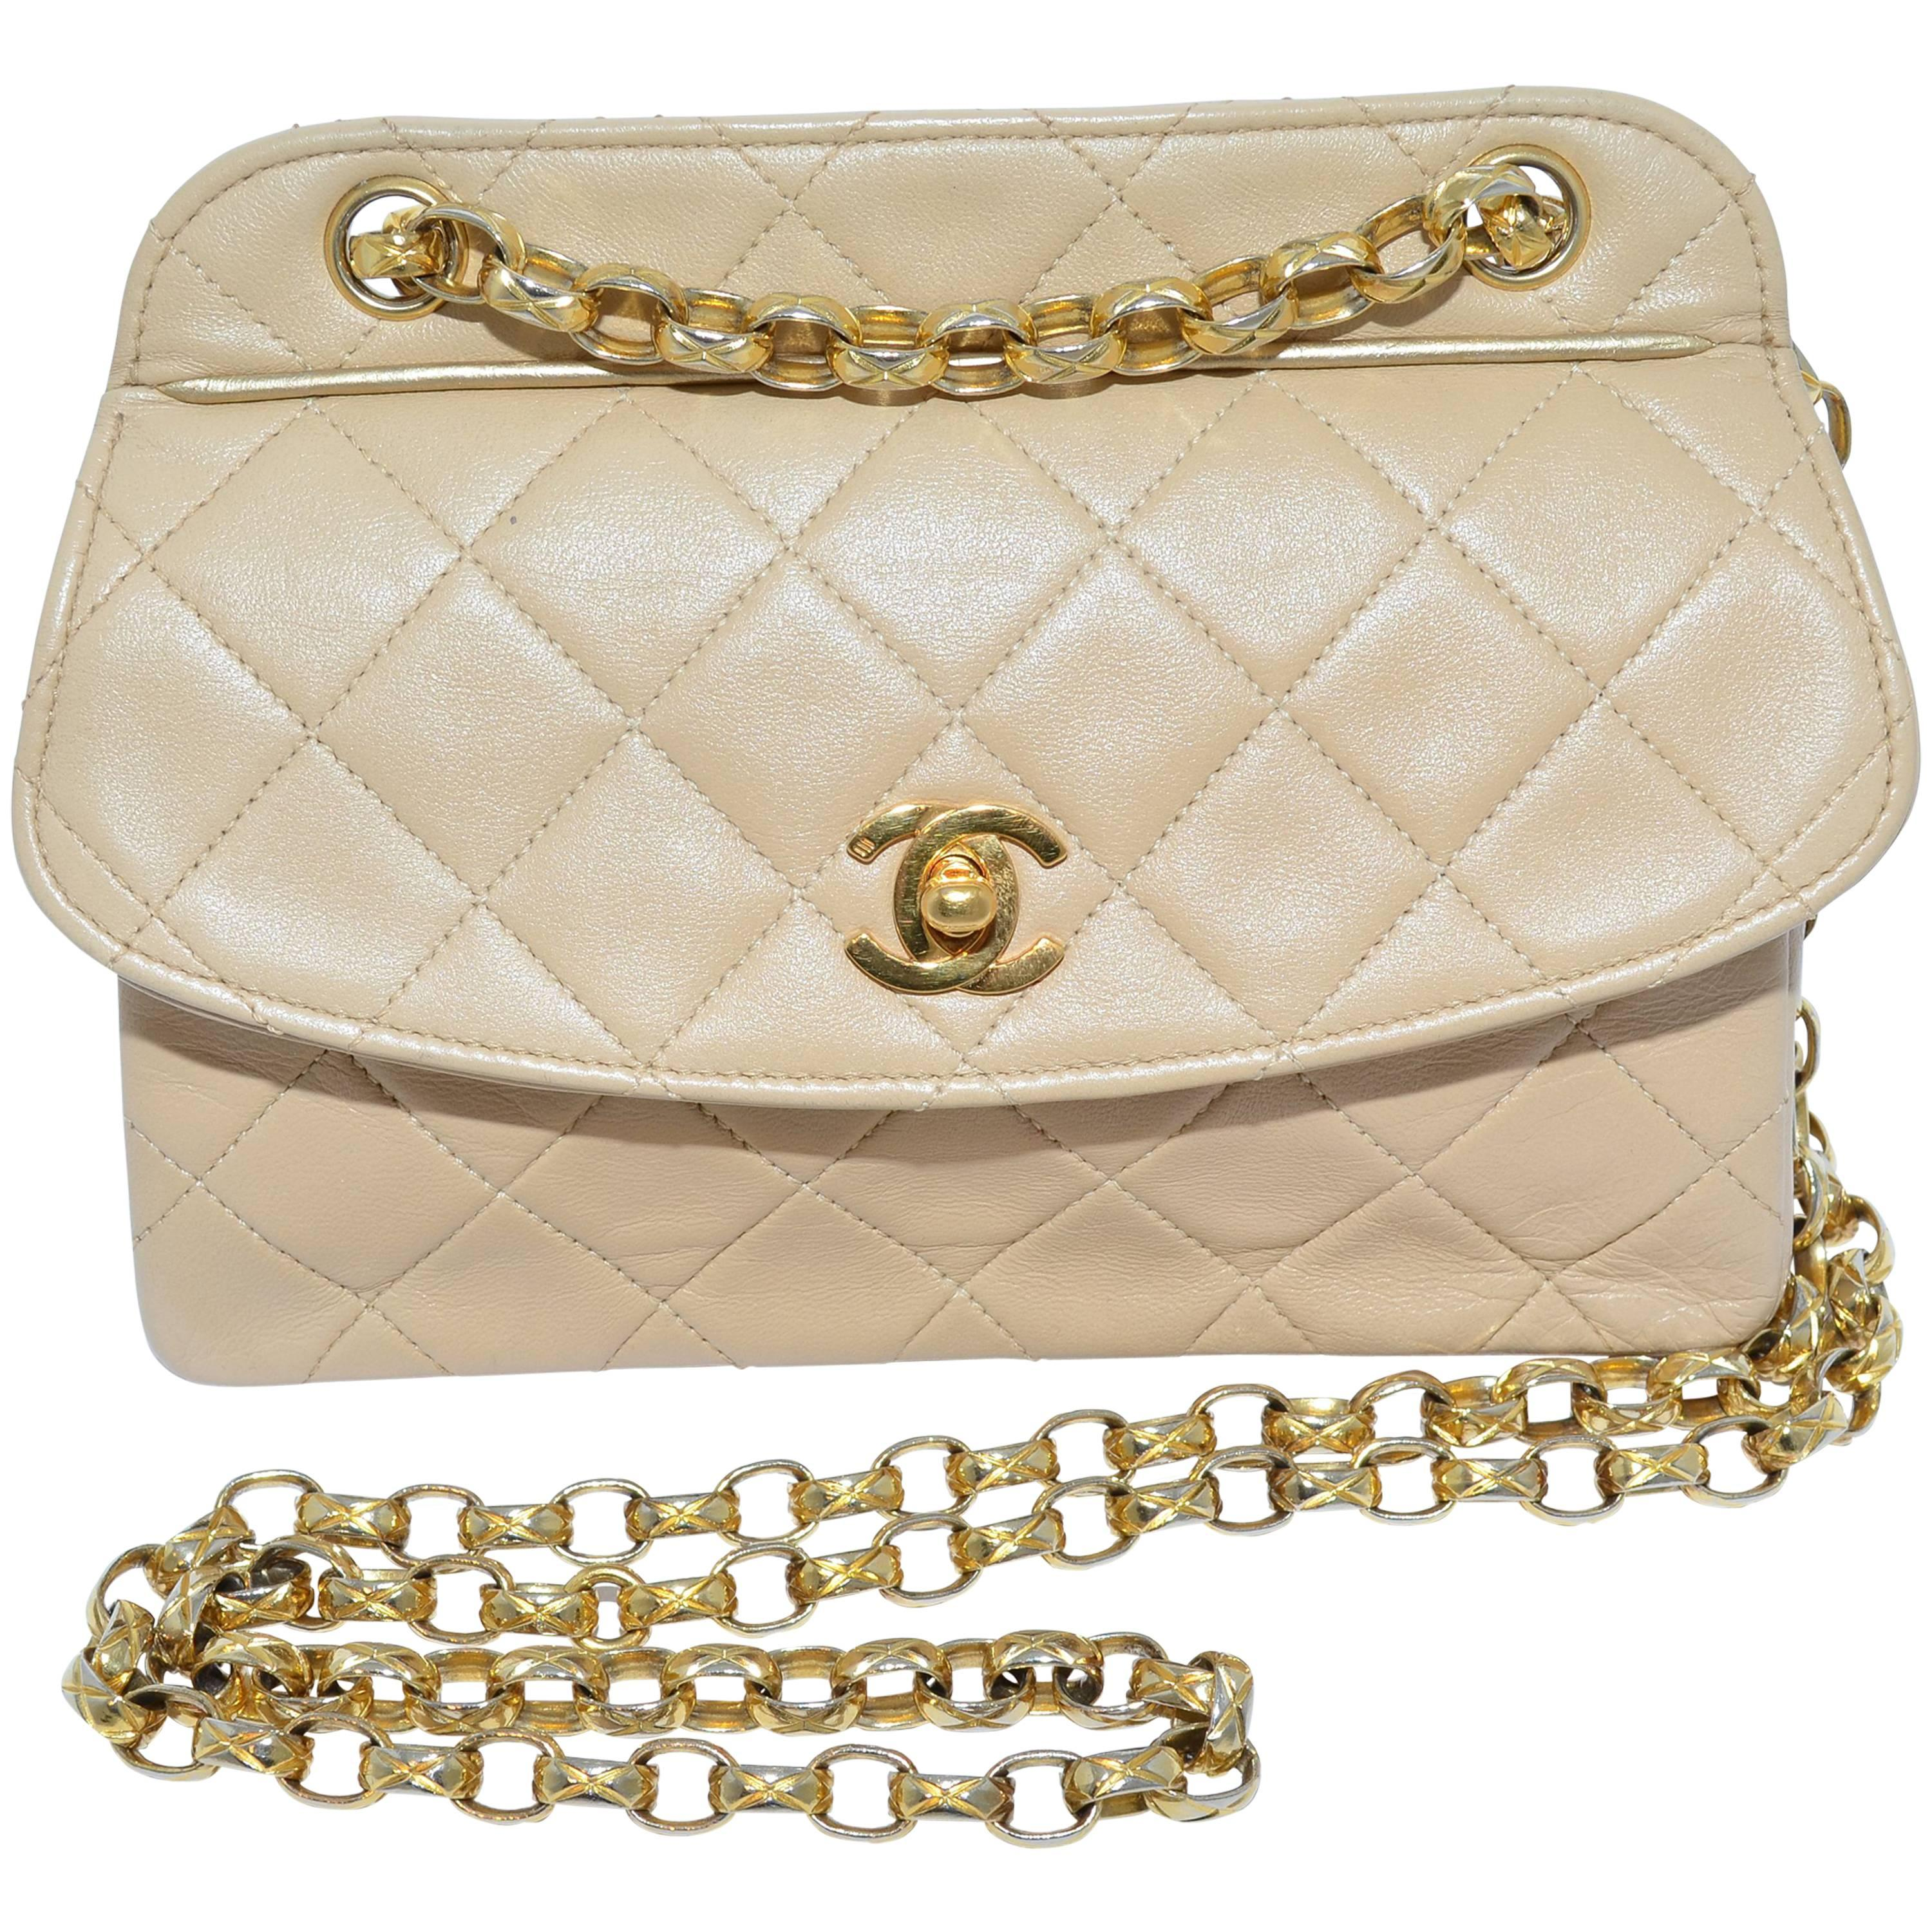 ff88c2384b01 Chanel 1989-1991 Vintage Quilted Mini Flap Bag at 1stdibs